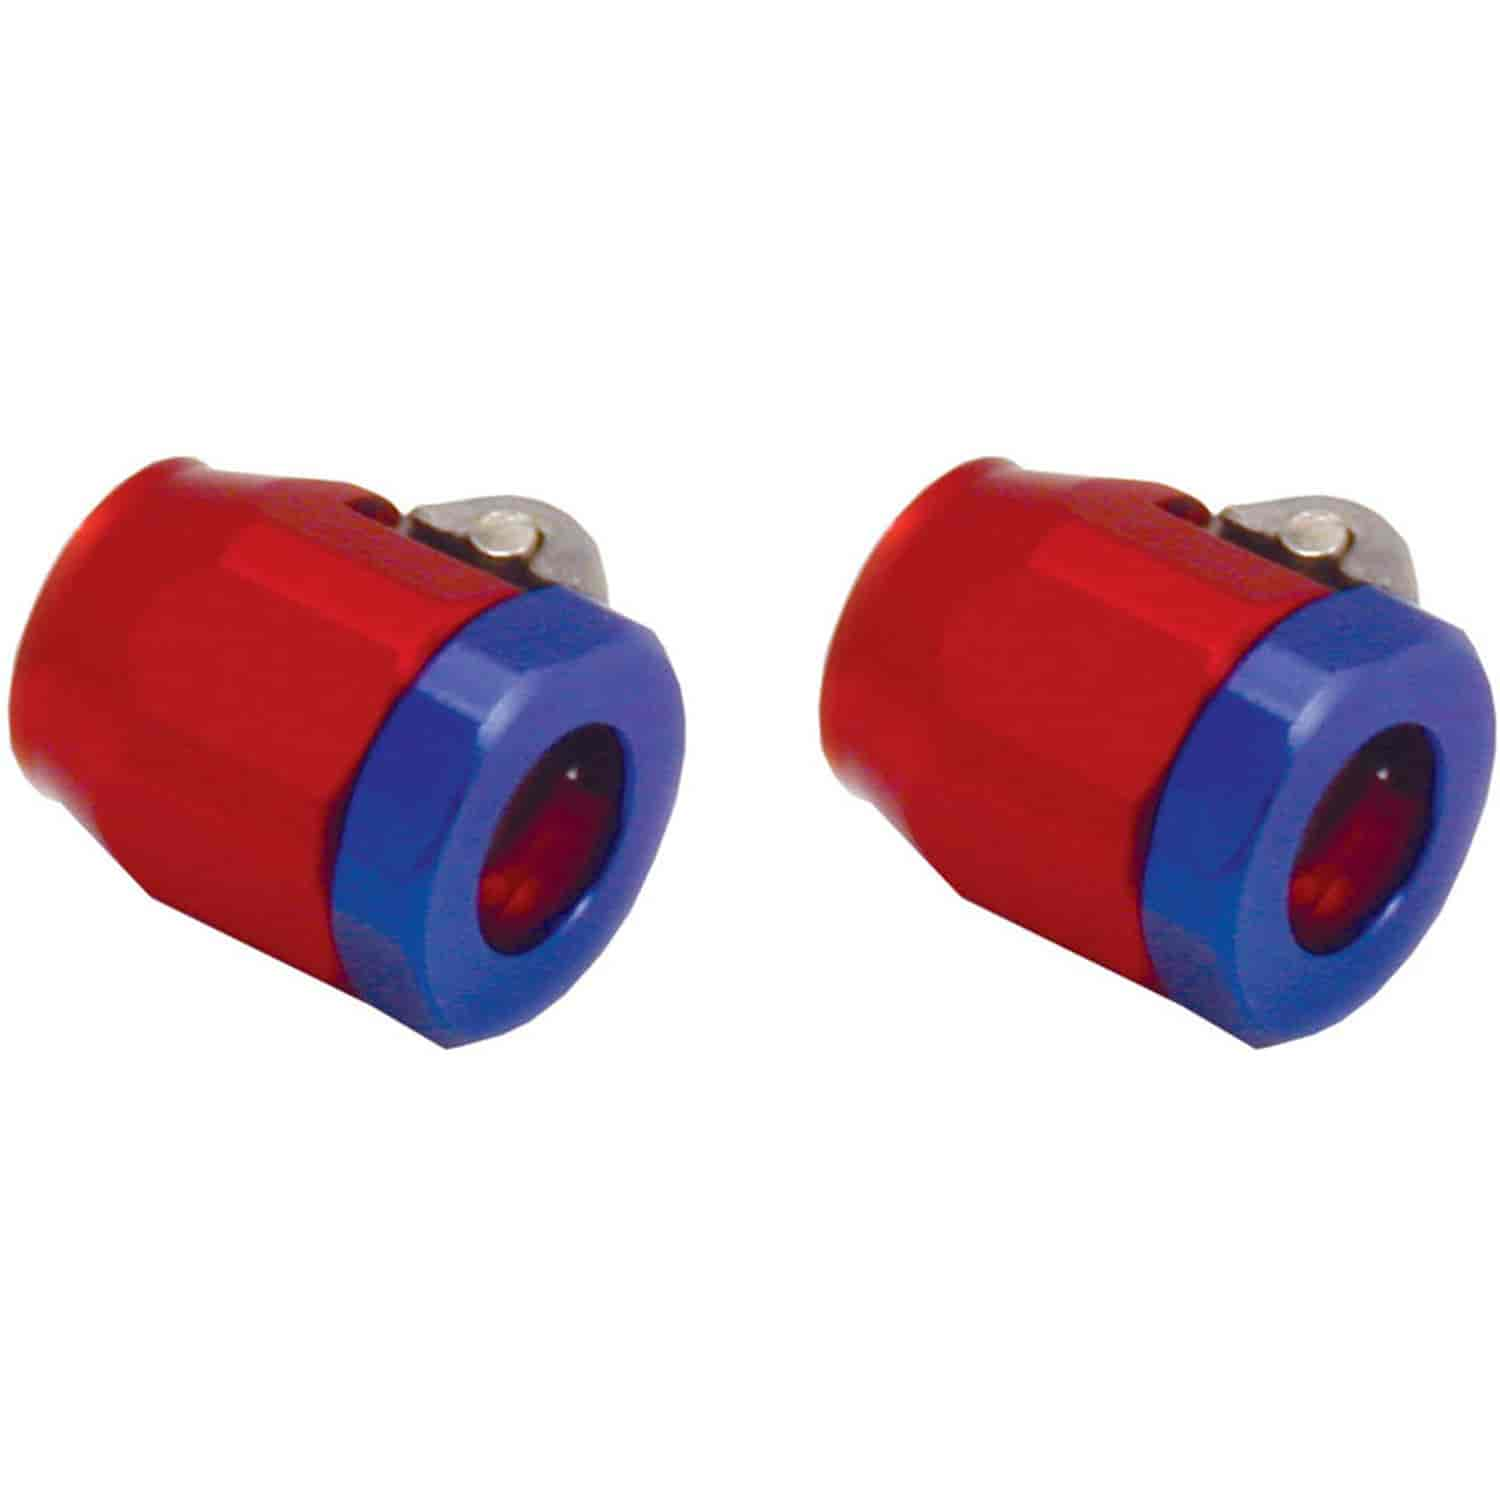 Spectre 2160 - Spectre Magna-Clamp Hose Fittings